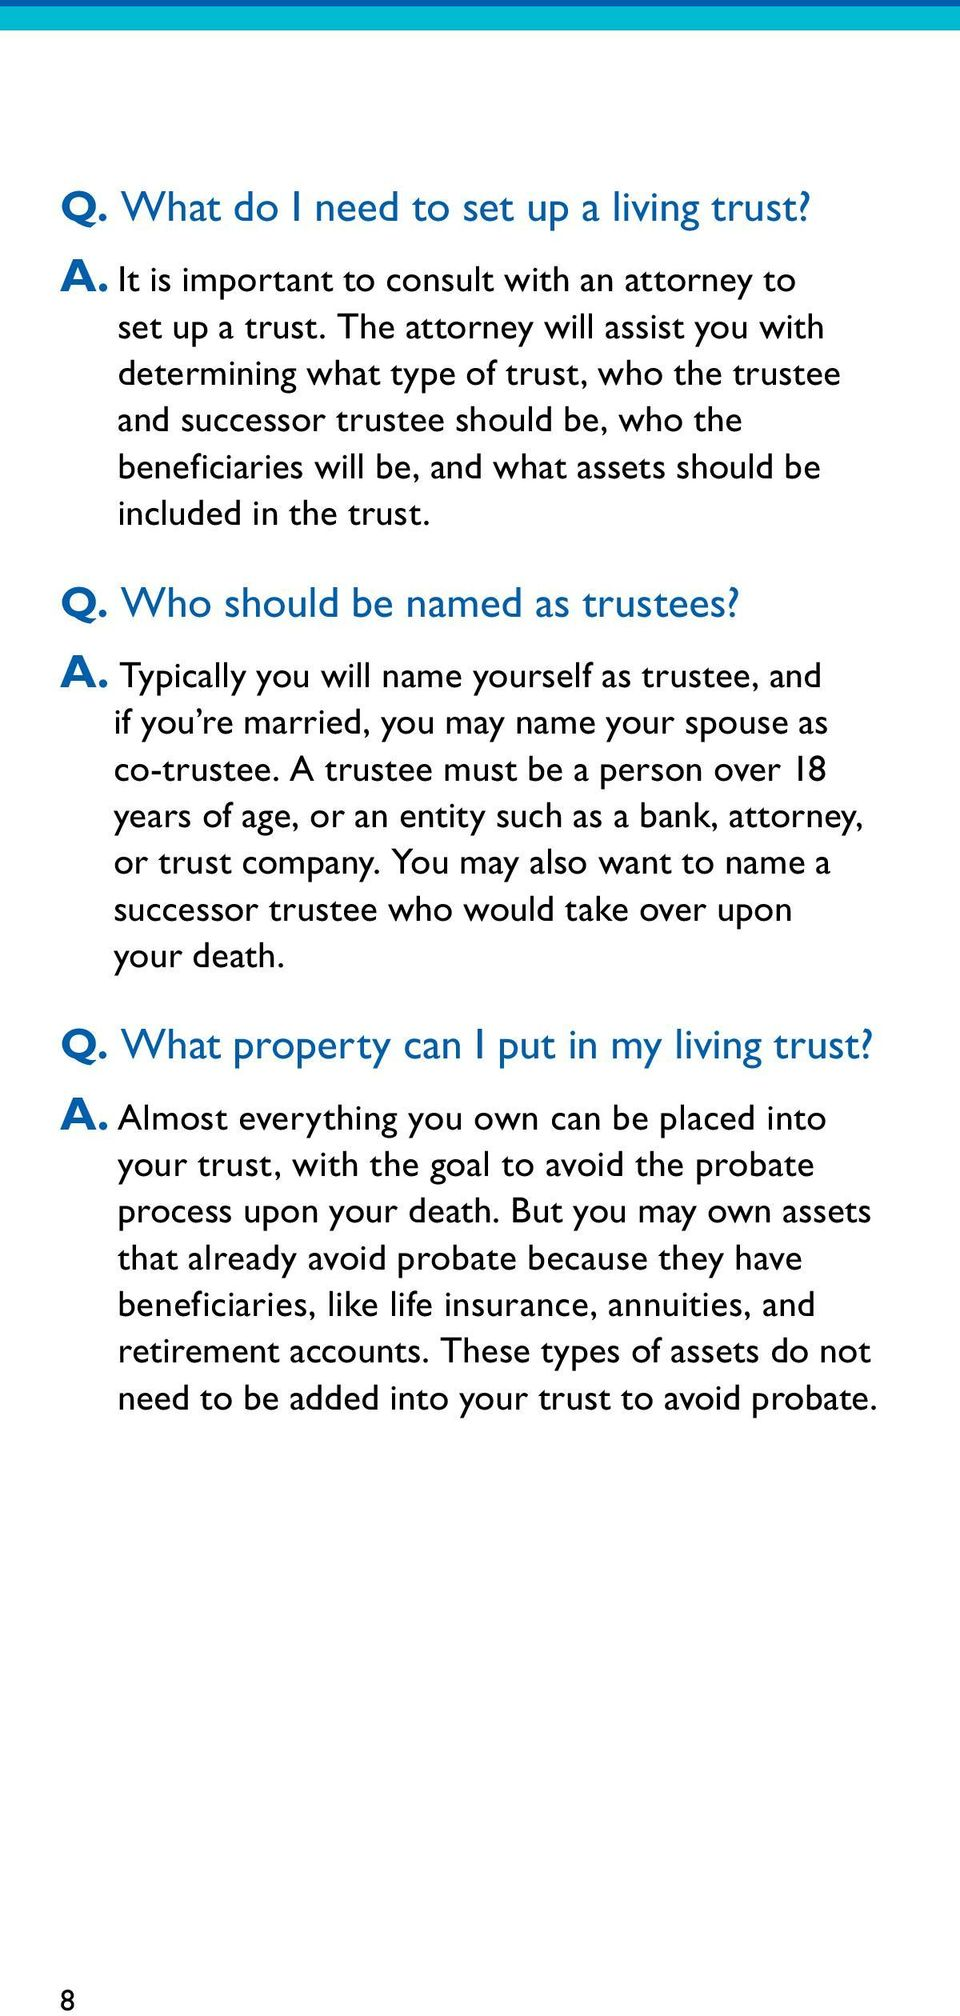 Who should be named as trustees? A. Typically you will name yourself as trustee, and if you re married, you may name your spouse as co-trustee.